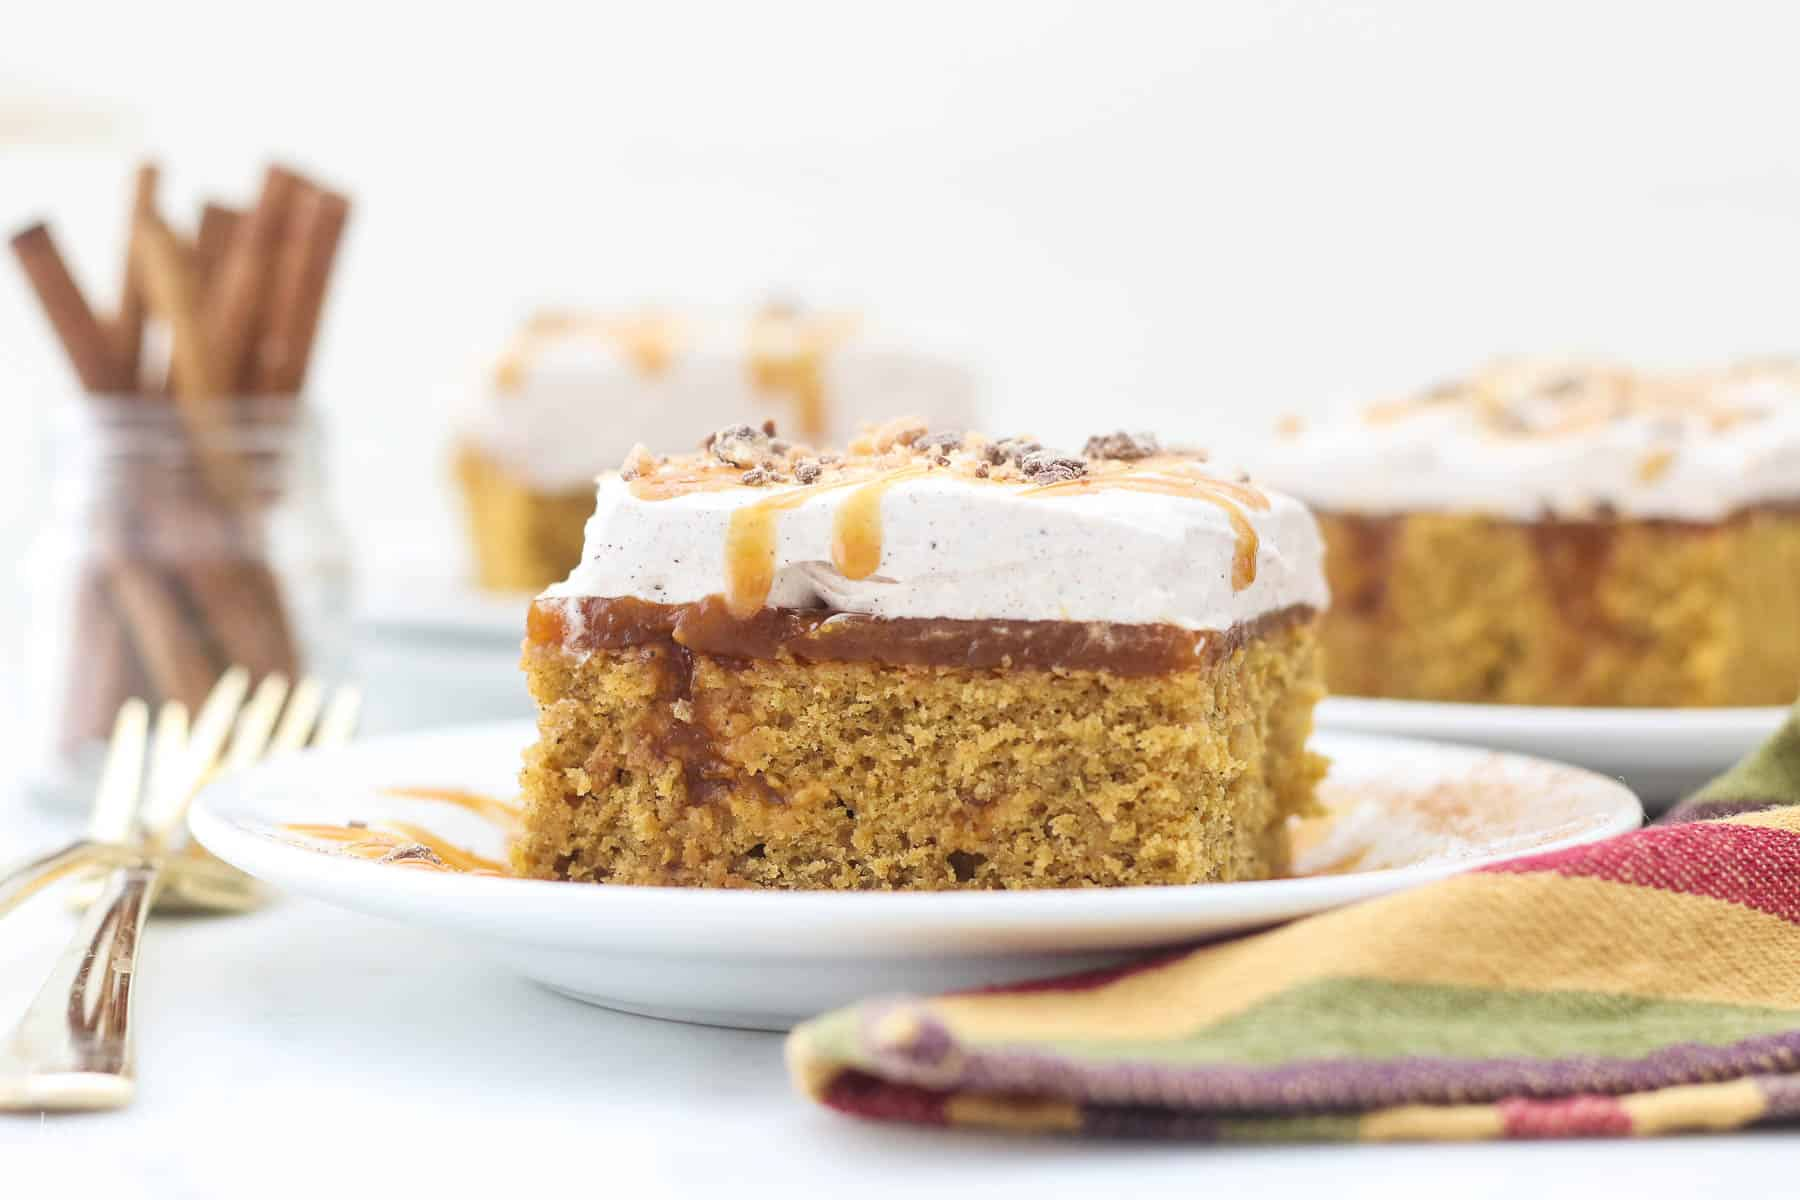 A wide angle shot of a slice of pumpkin poke cake showing the layers of the cake. There's two slices blurred out in the background and some cinnamon sticks.